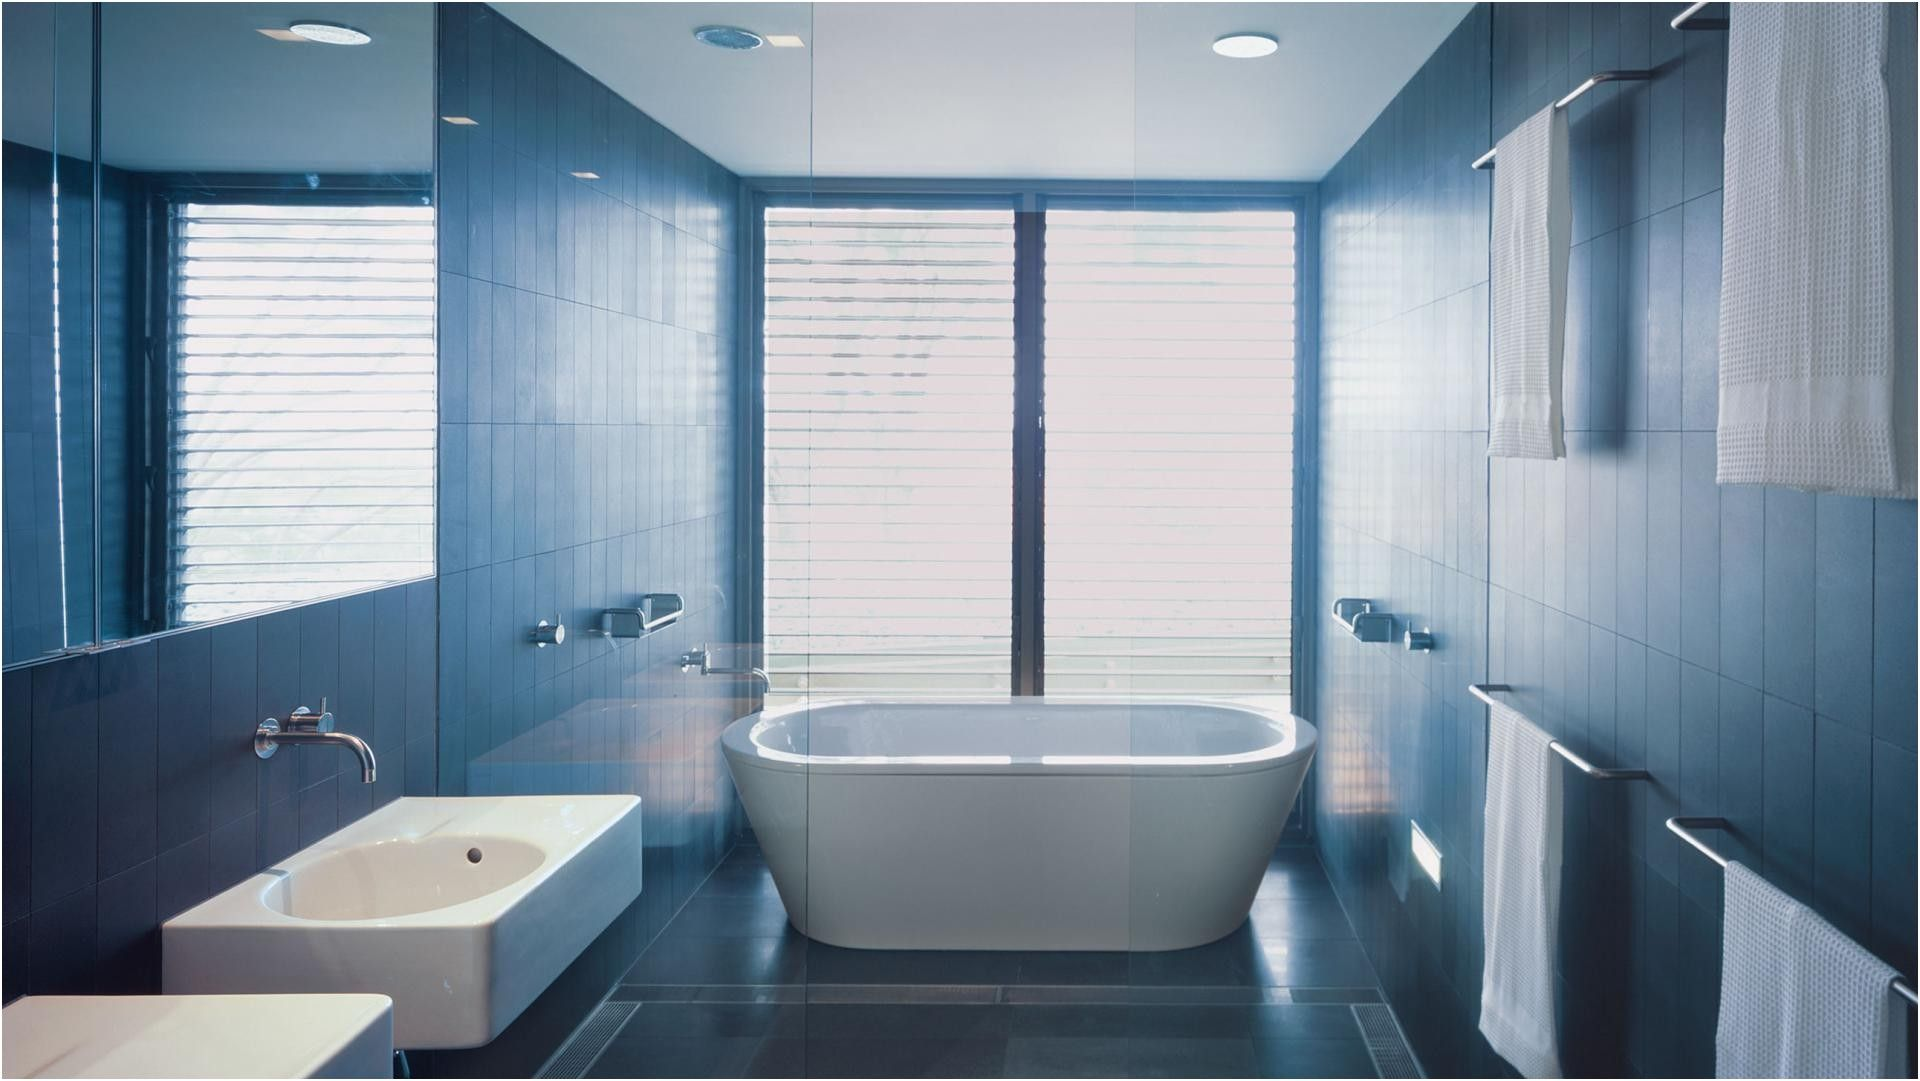 Bathroom Design Tips Top 7 Wet Room Design Tips From Wet Area Bathroom Design